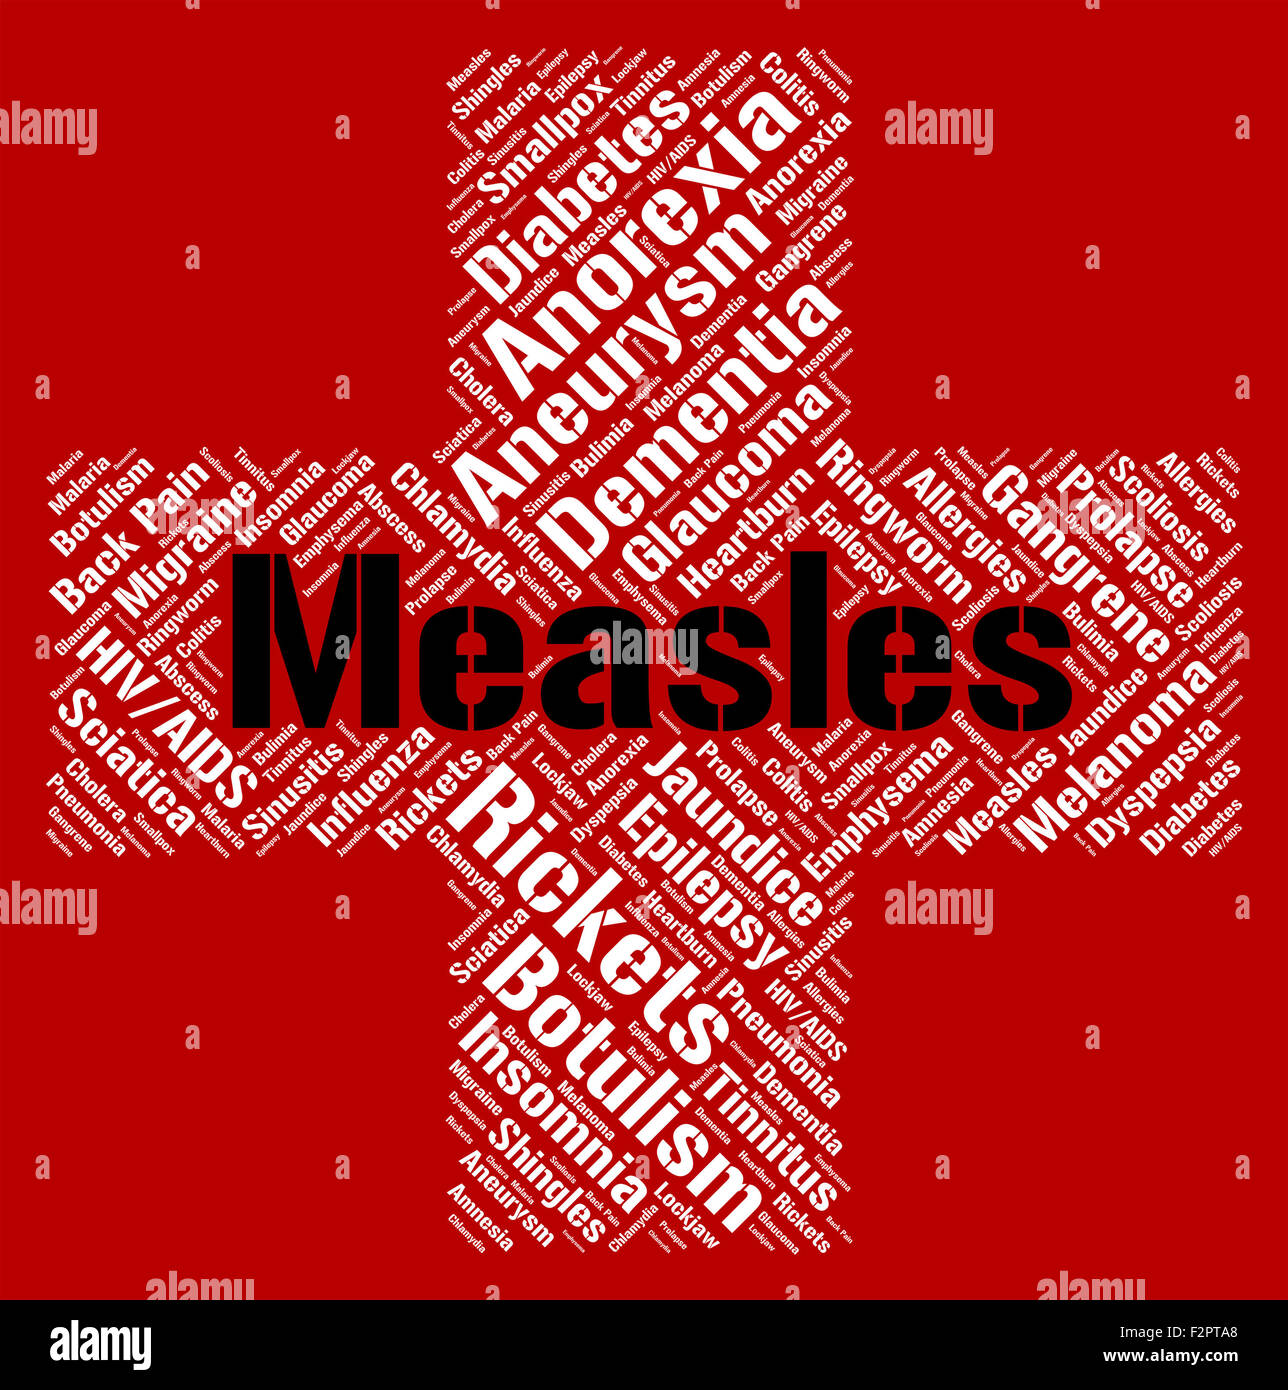 Measles Word Indicating Ill Health And Ailments Stock Photo